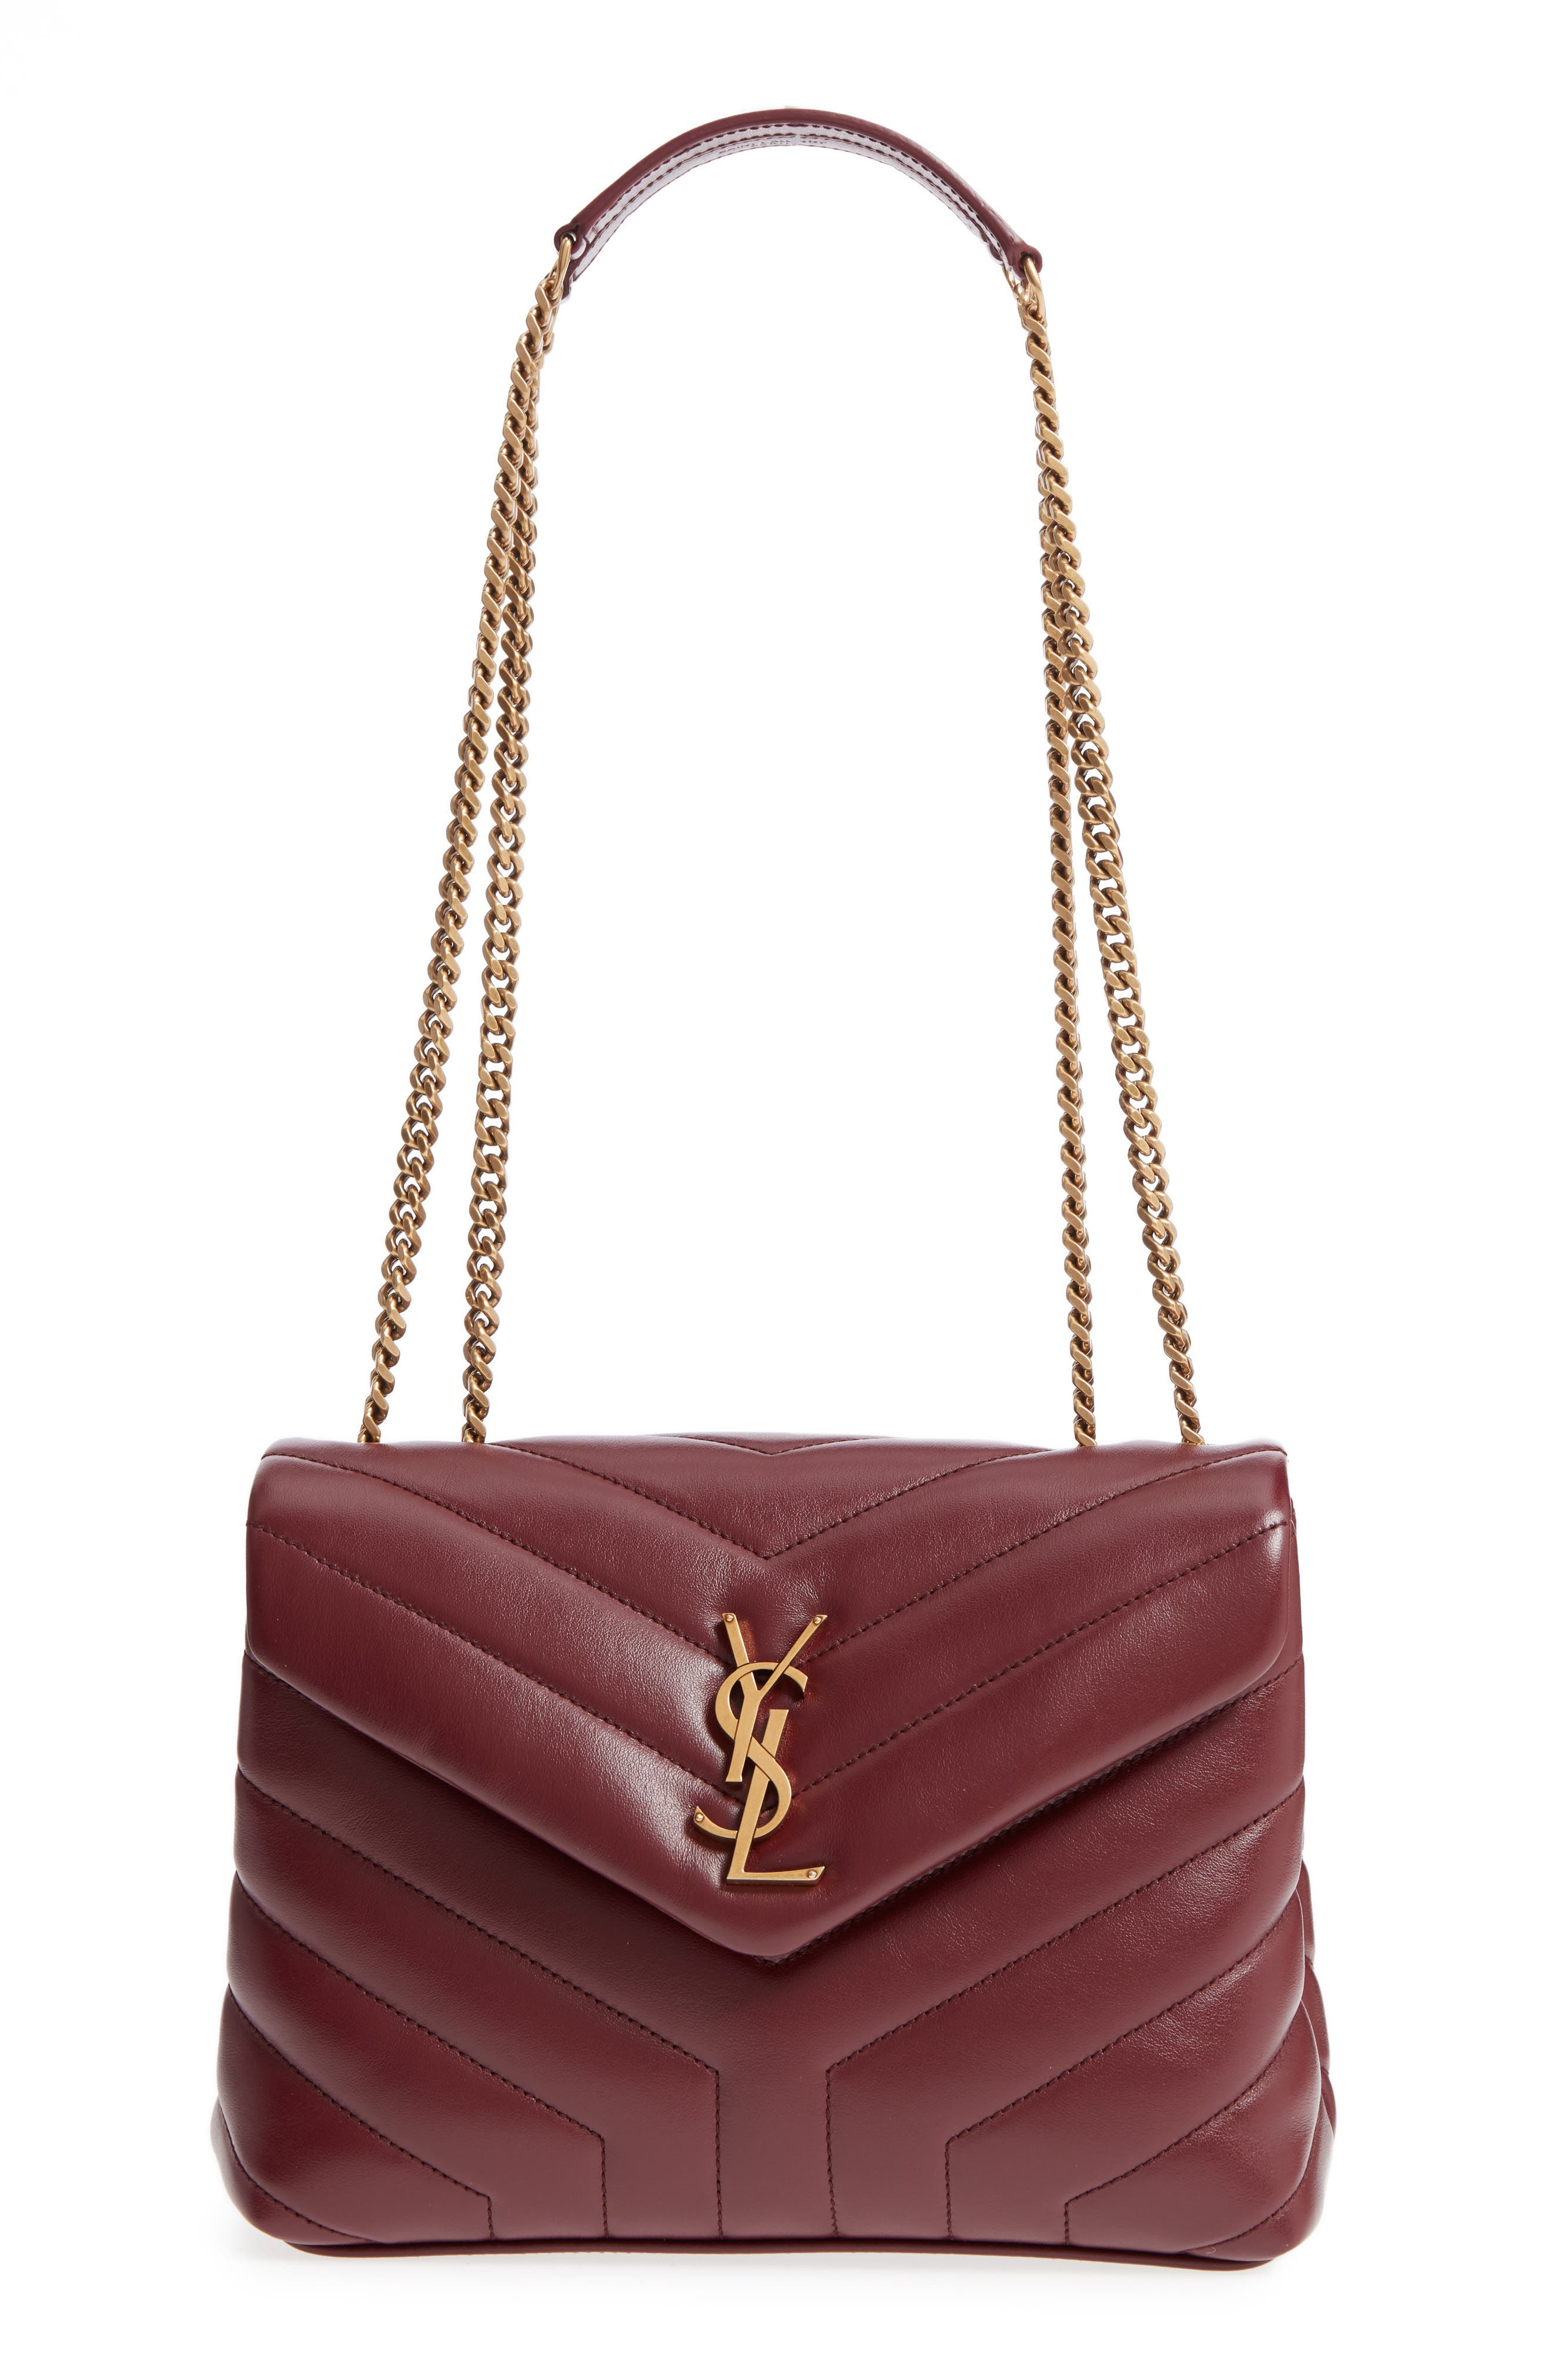 ,                             Small Loulou Leather Shoulder Bag,                             Main thumbnail 28, color,                             930